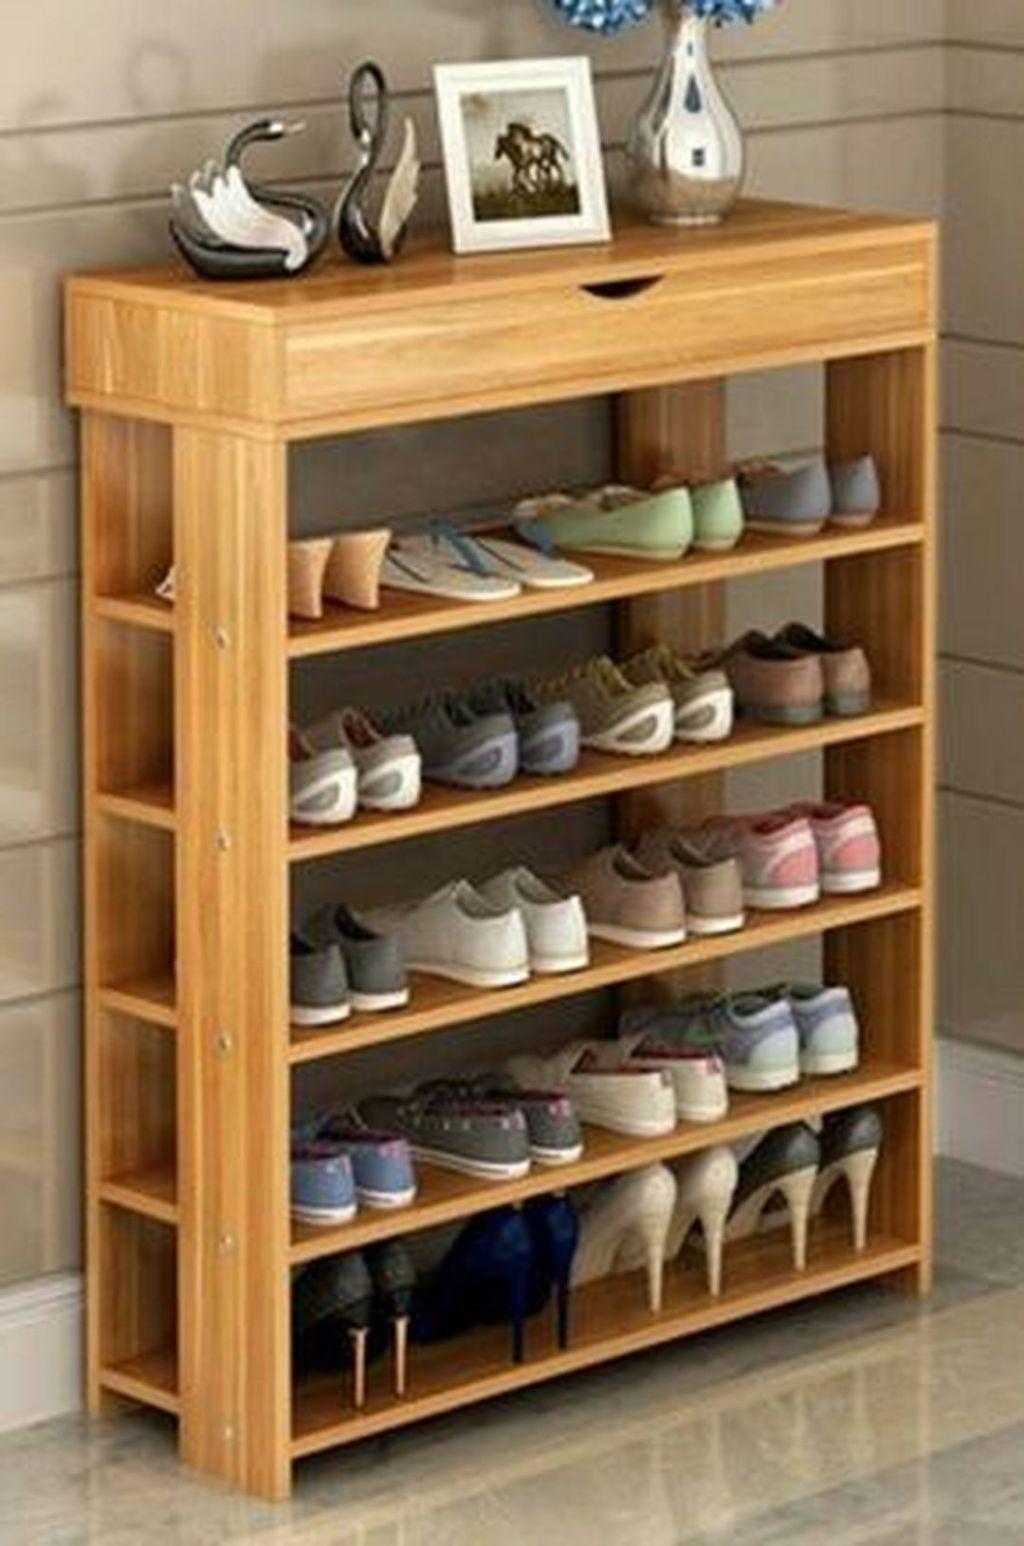 17 Brilliant Shoes Storage Ideas On A Budget Decoracao Da Casa